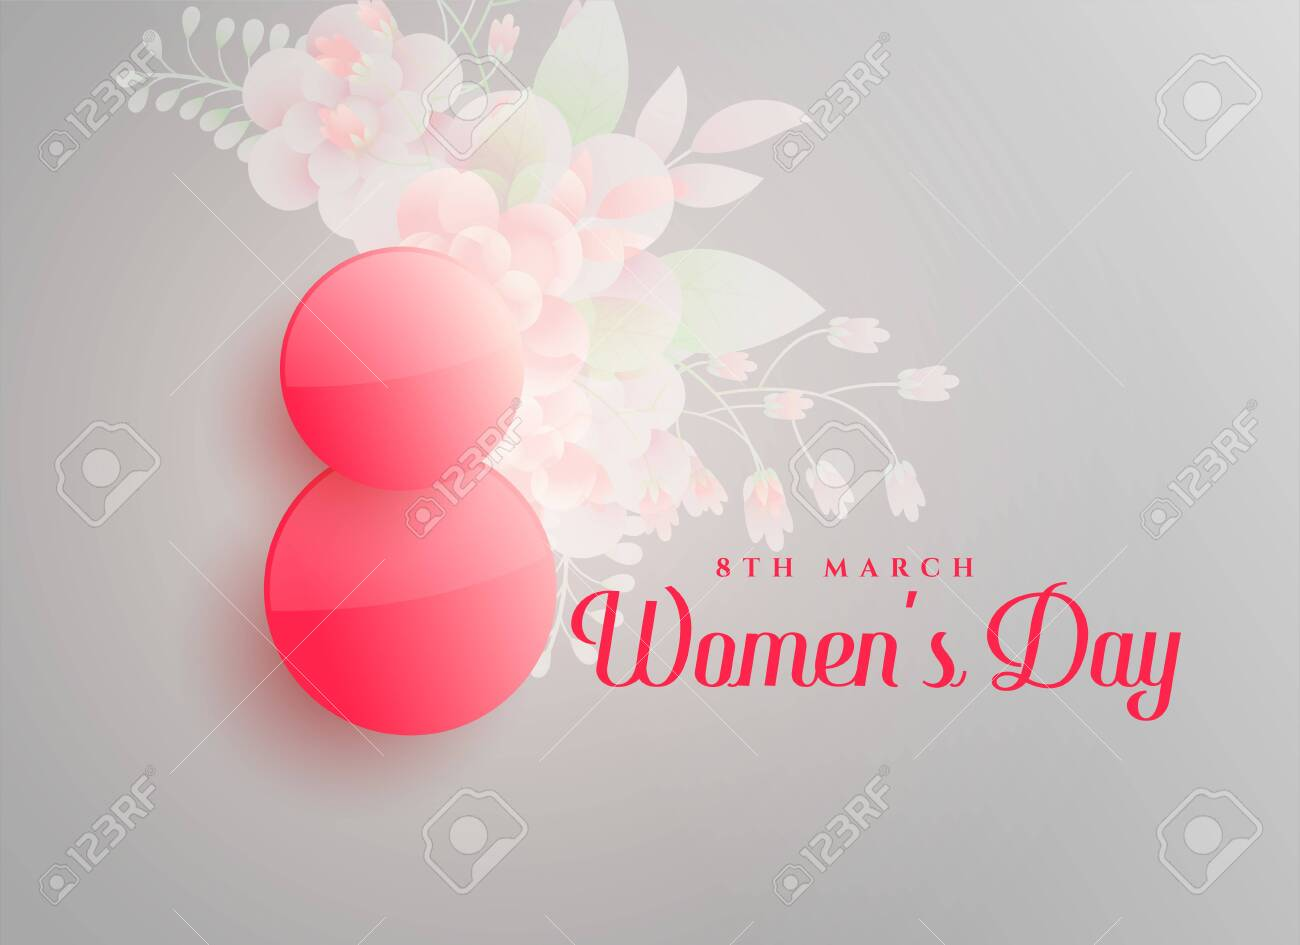 march 8th happy women's day background - 149772761